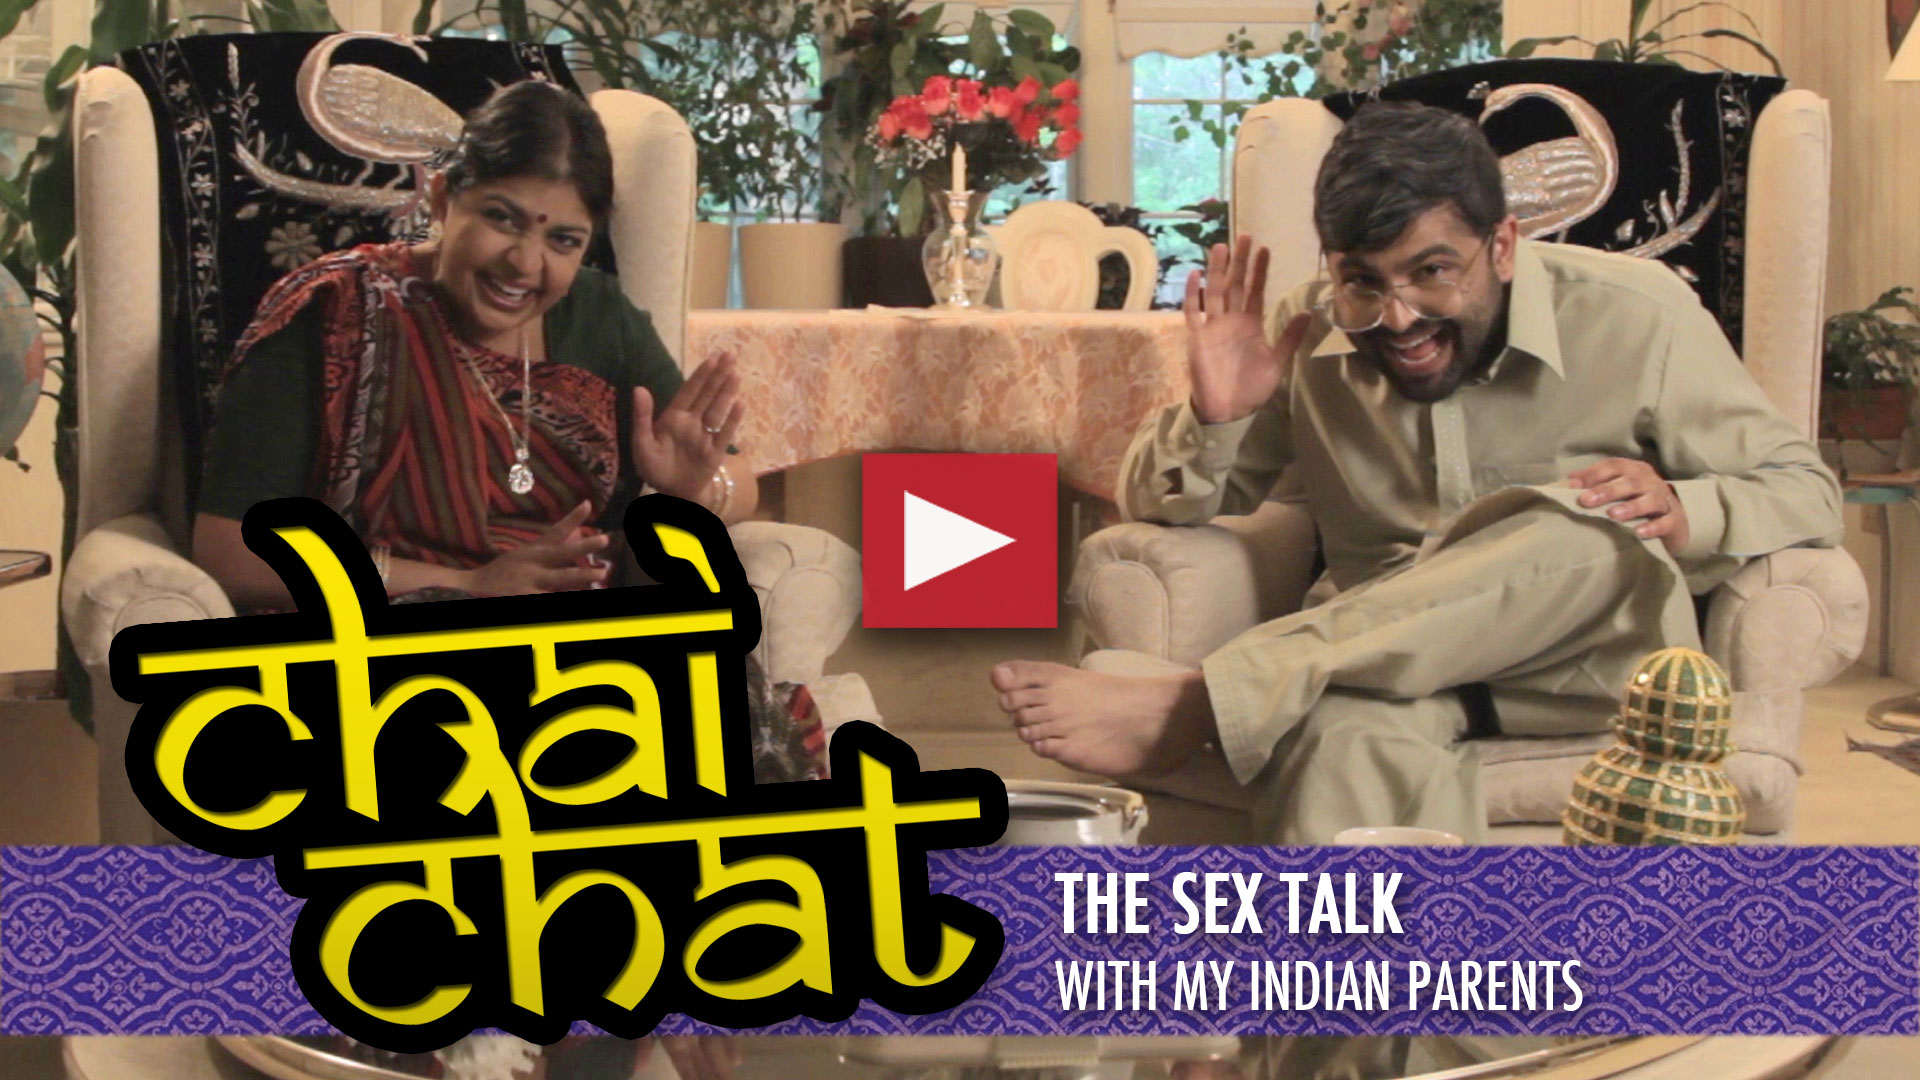 Chai Chat – The Sex Talk with My Indian Parents